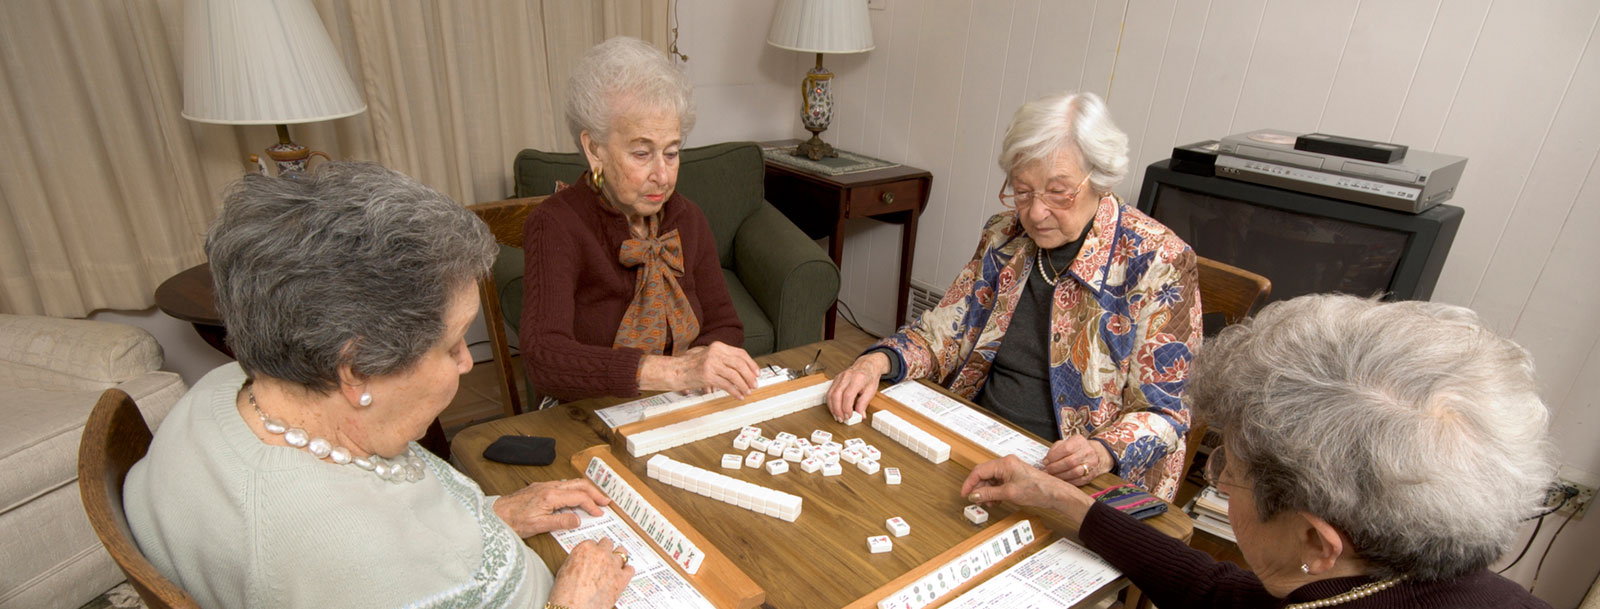 Sterling senior living facility offers adult day services for you or your family